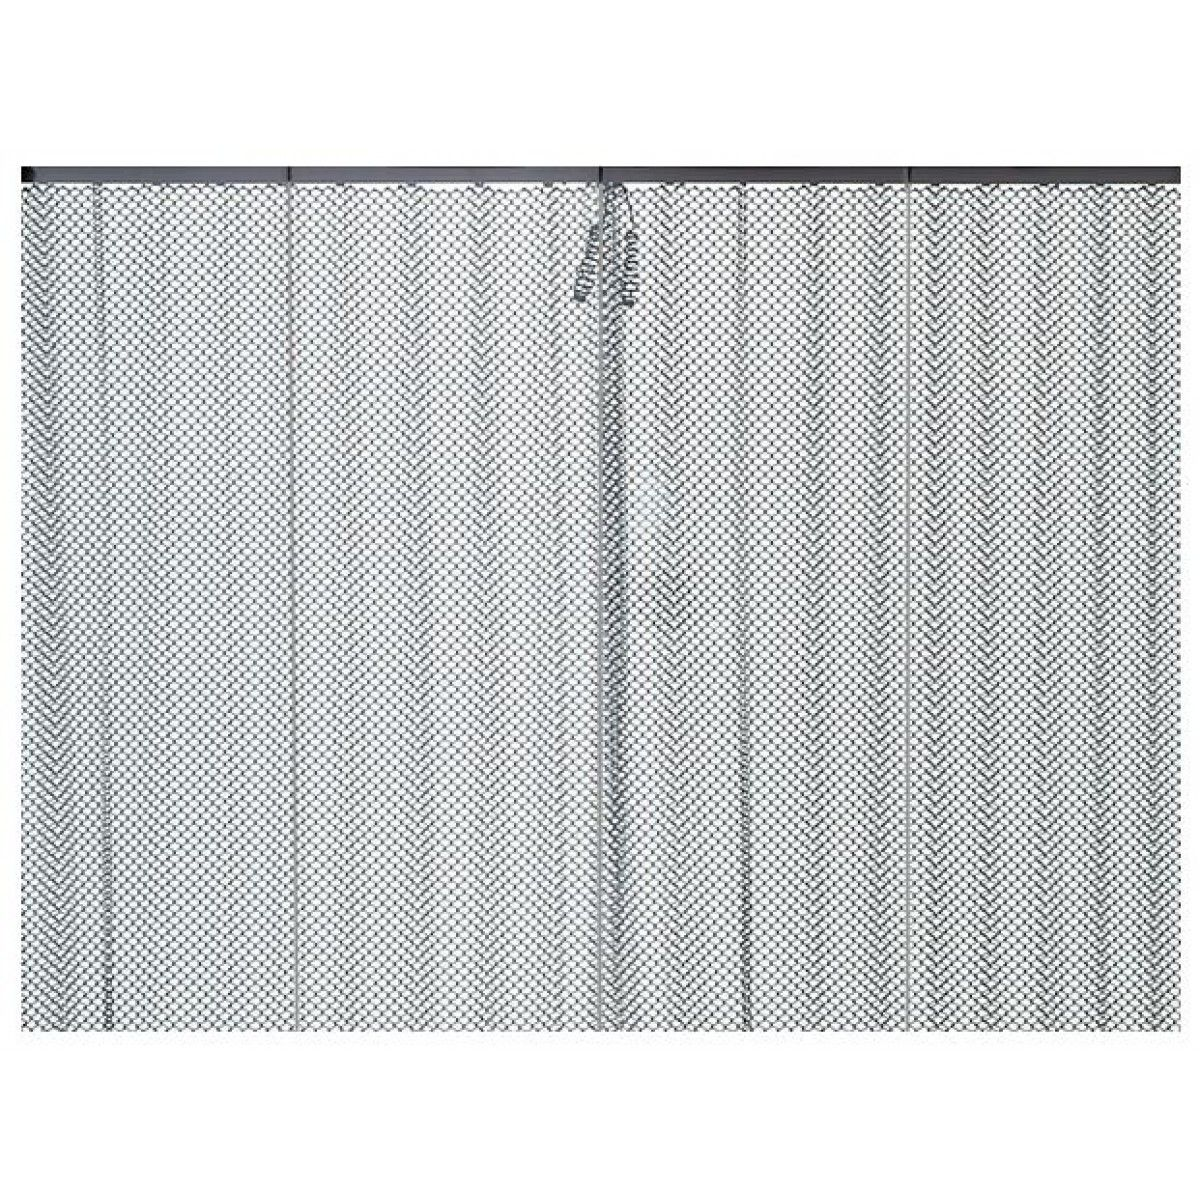 amazing chainmail curtain stainless steel fireplace screen  - fireplace mesh doors screens and curtainswhich choice is right for